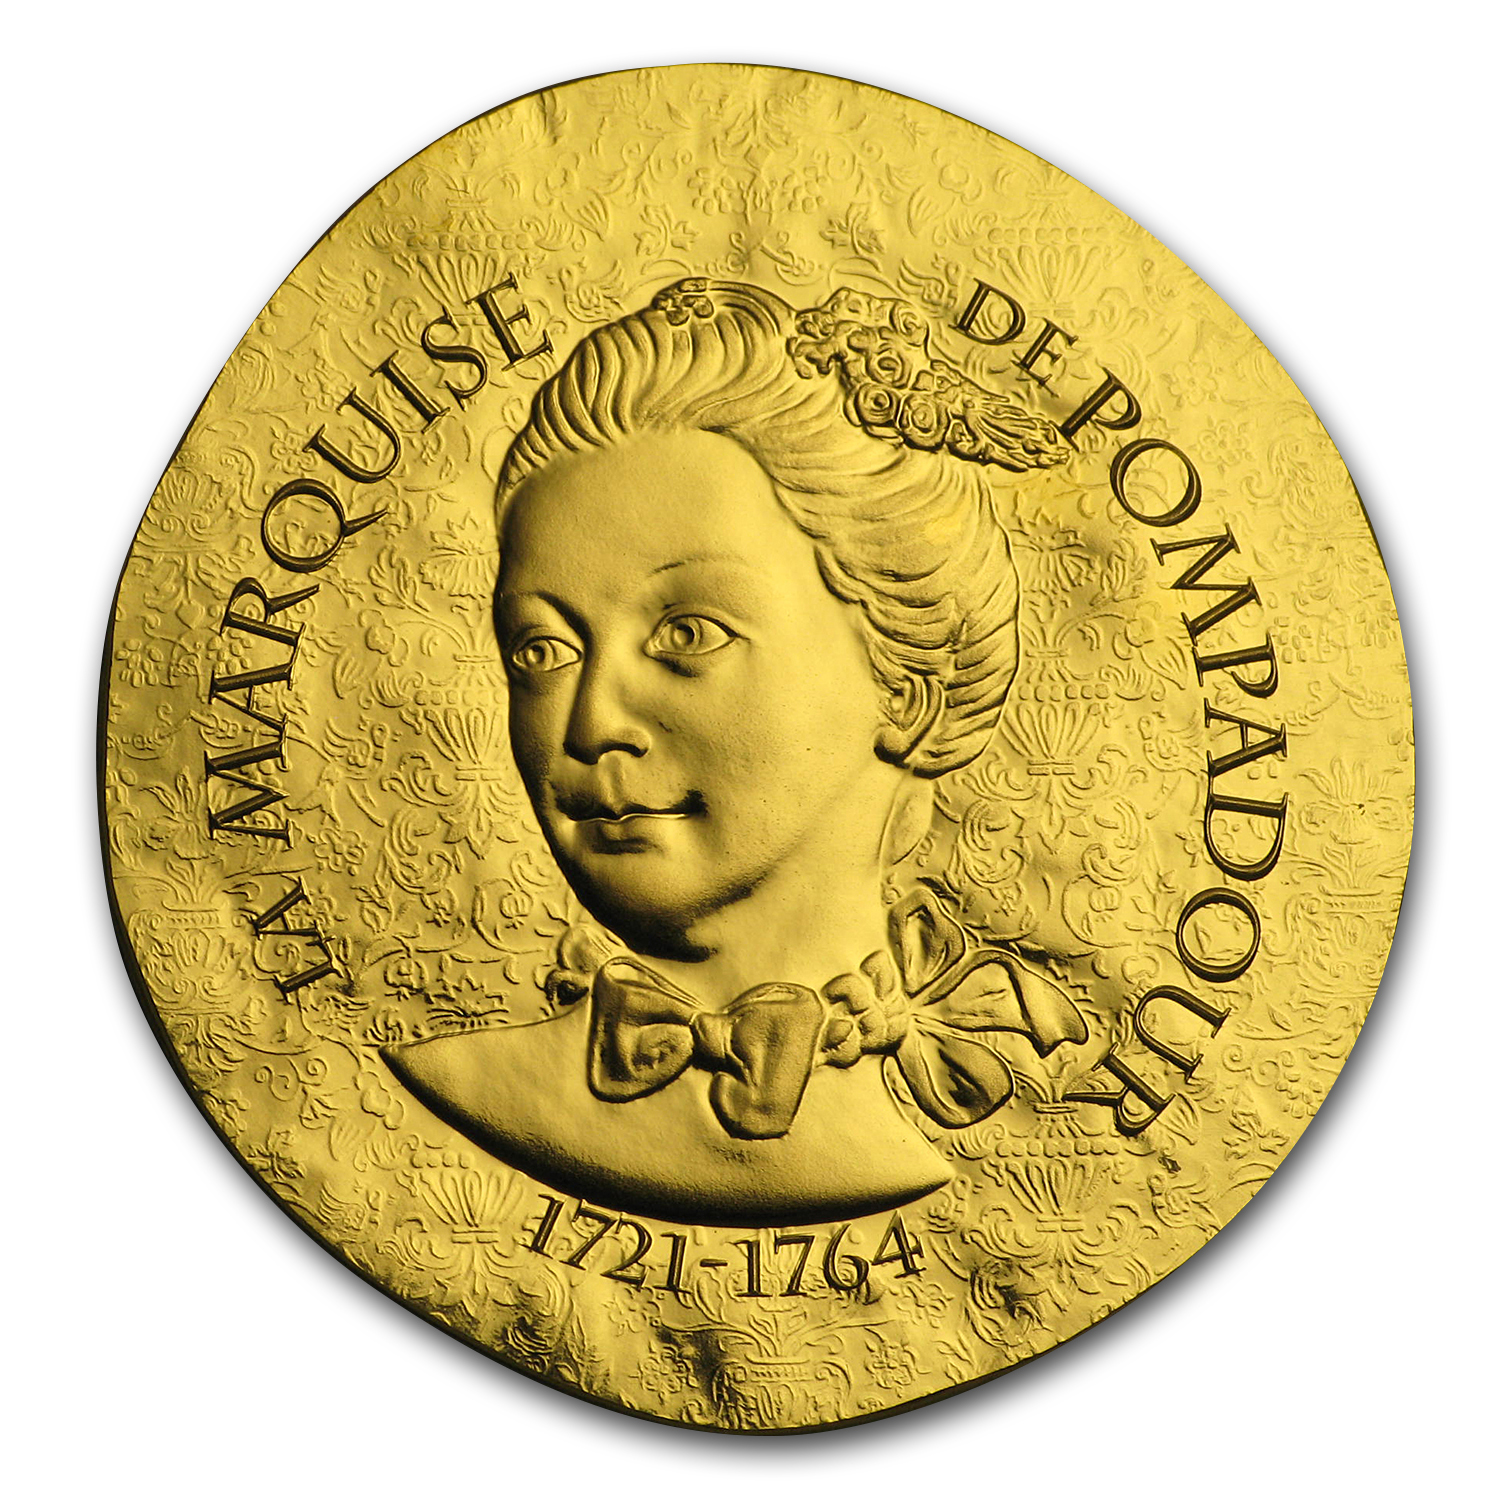 2017 1/4 oz Prf Gold €50 Women of France (Marquise de Pompadour)